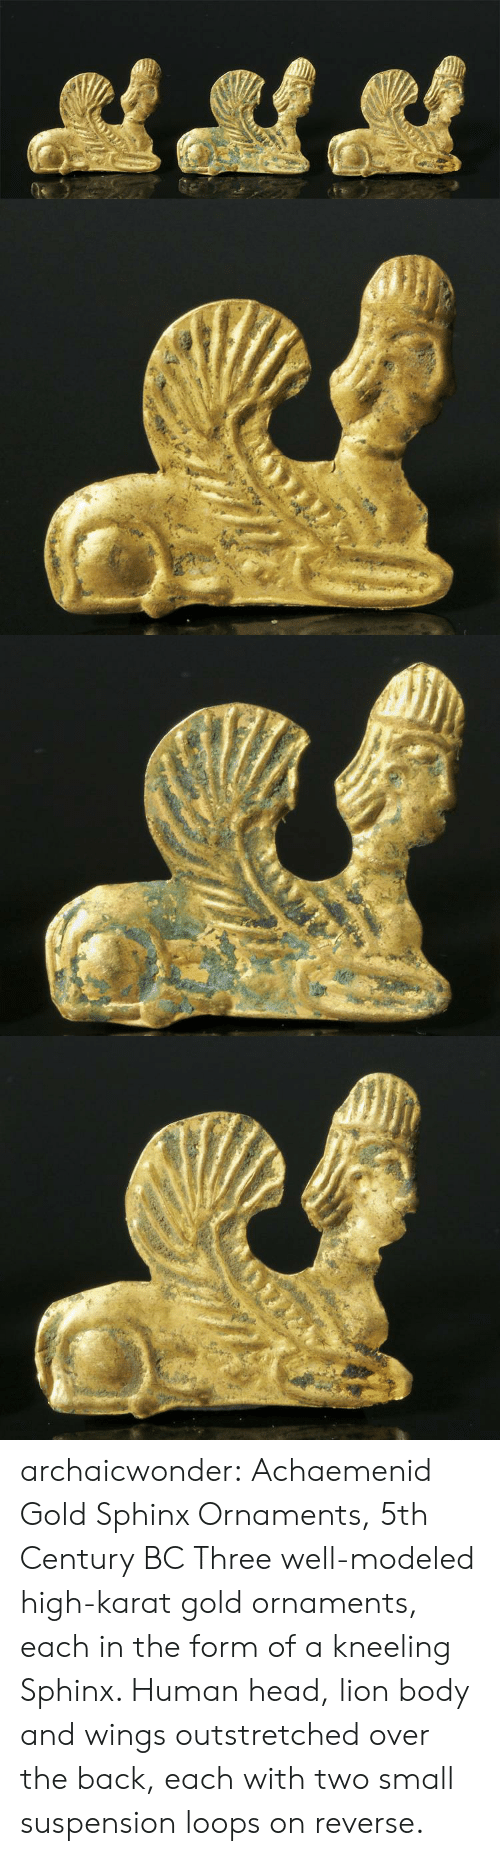 karat: archaicwonder:  Achaemenid Gold Sphinx Ornaments, 5th Century BC Three well-modeled high-karat gold ornaments, each in the form of a  kneeling Sphinx. Human head, lion body and wings outstretched over the  back, each with two small suspension loops on reverse.